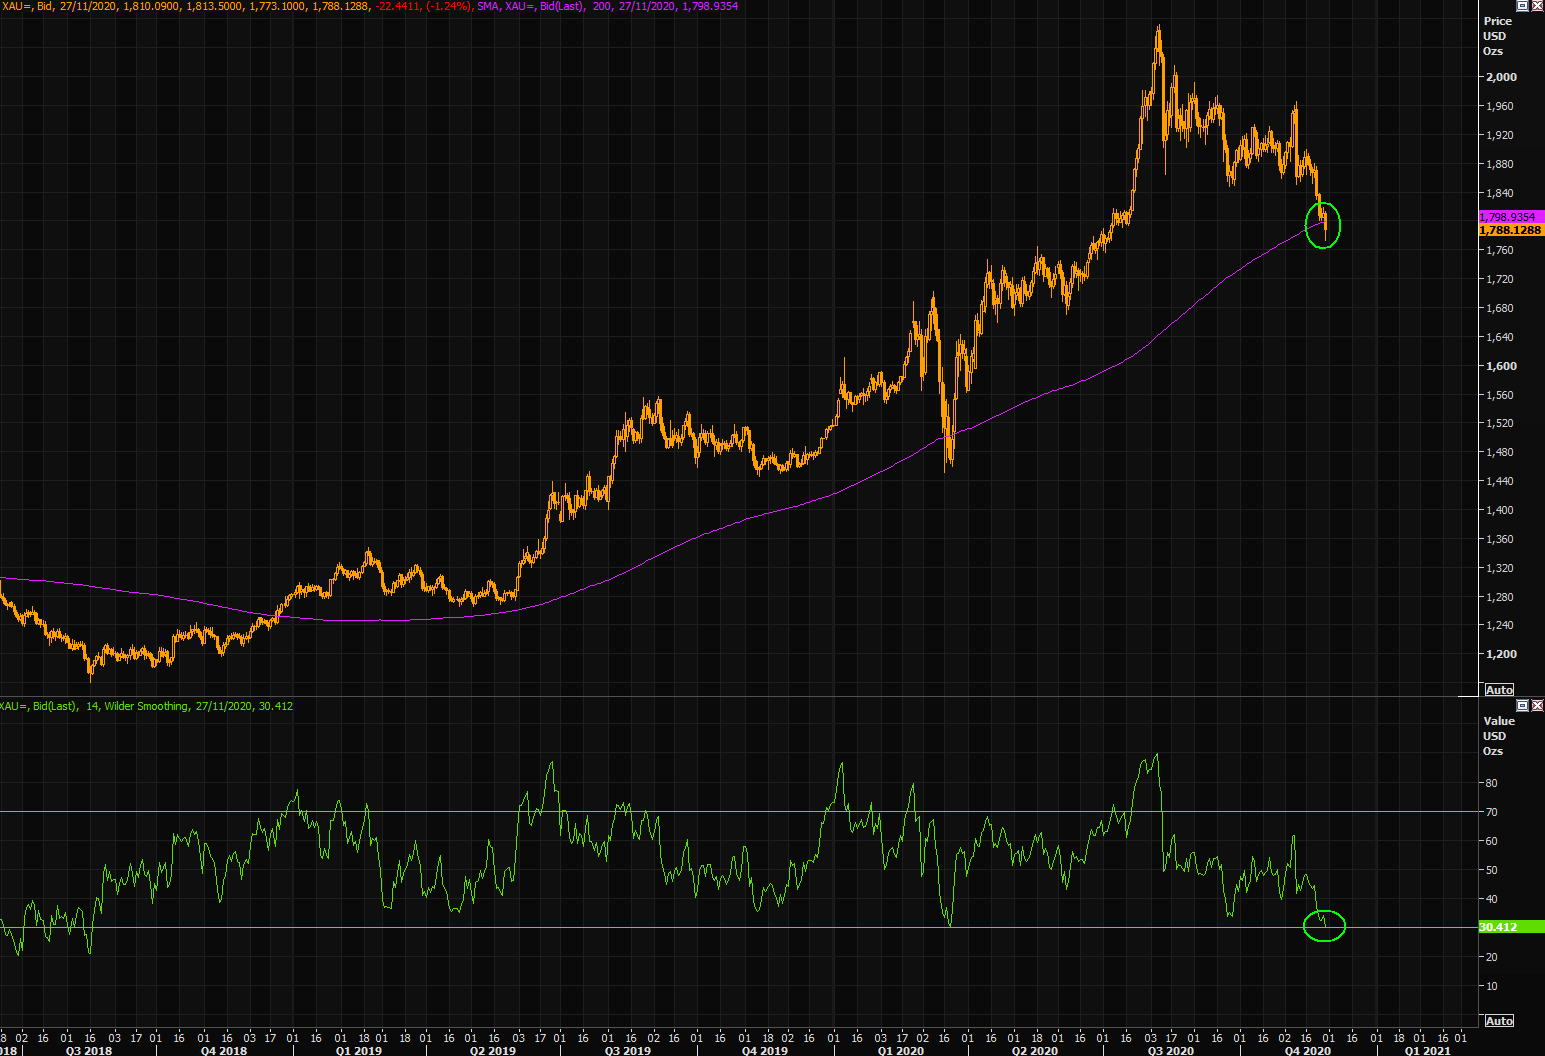 Do you buy extremely oversold gold trading slightly below the 200 day moving average, or do you chase copper here...